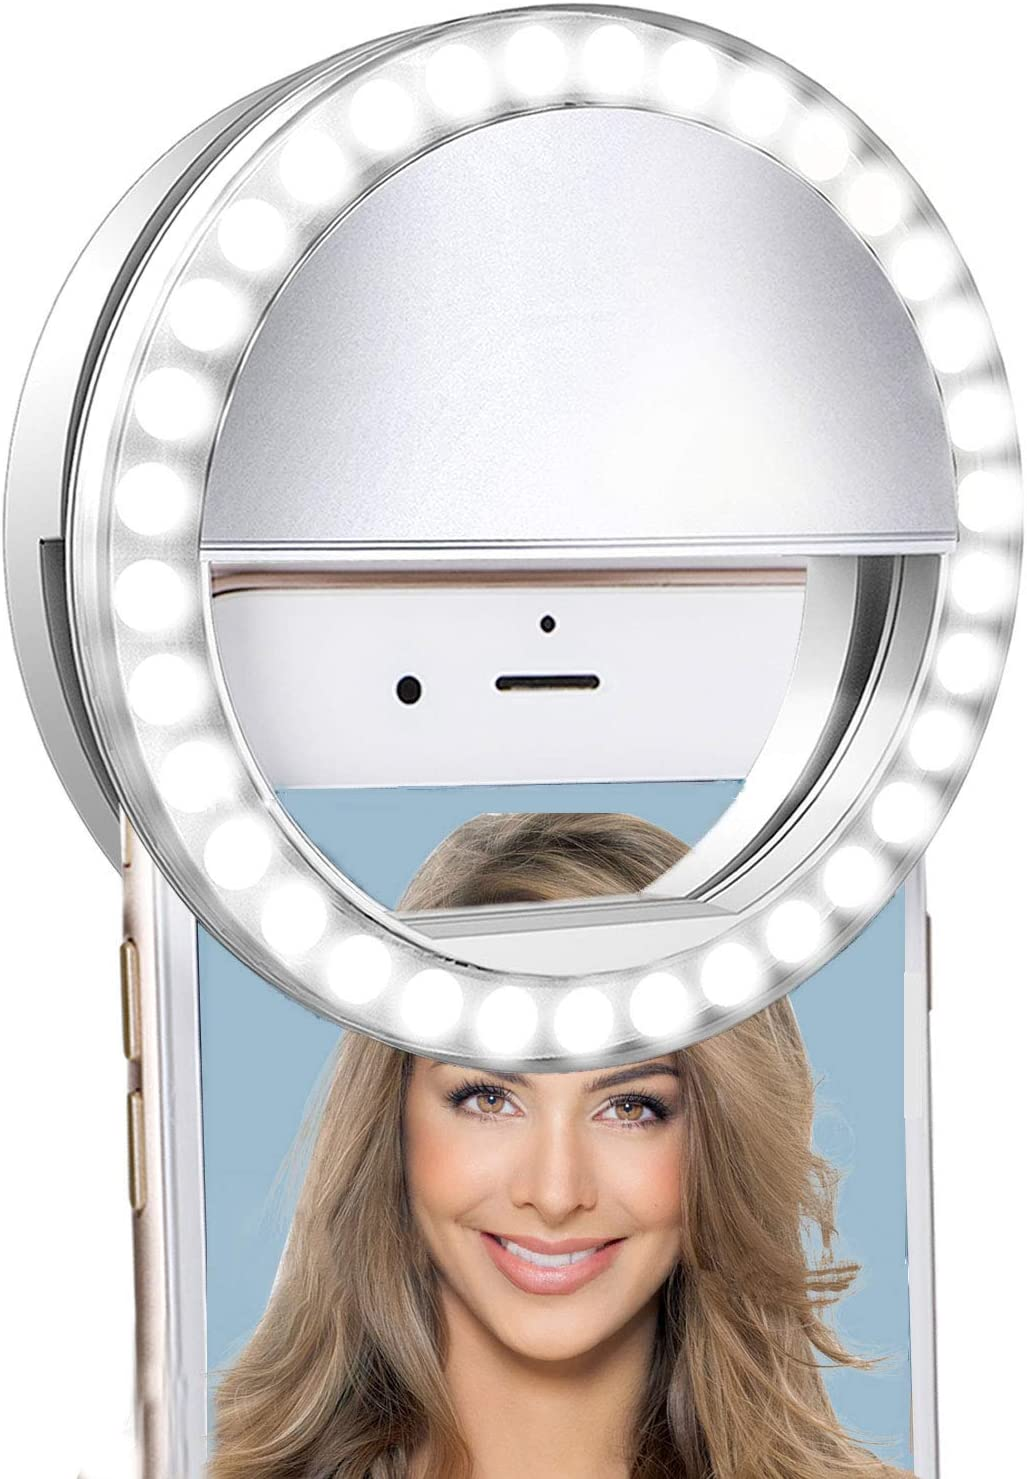 Selfie Ring Light for iPhone & Android,LVYOUIF Portable Clip on Ring Selfie Light Flash with 36 Rechargeable LED for Phone Laptop iPad Photography Camera Video Girls Makeup Mirror(White)